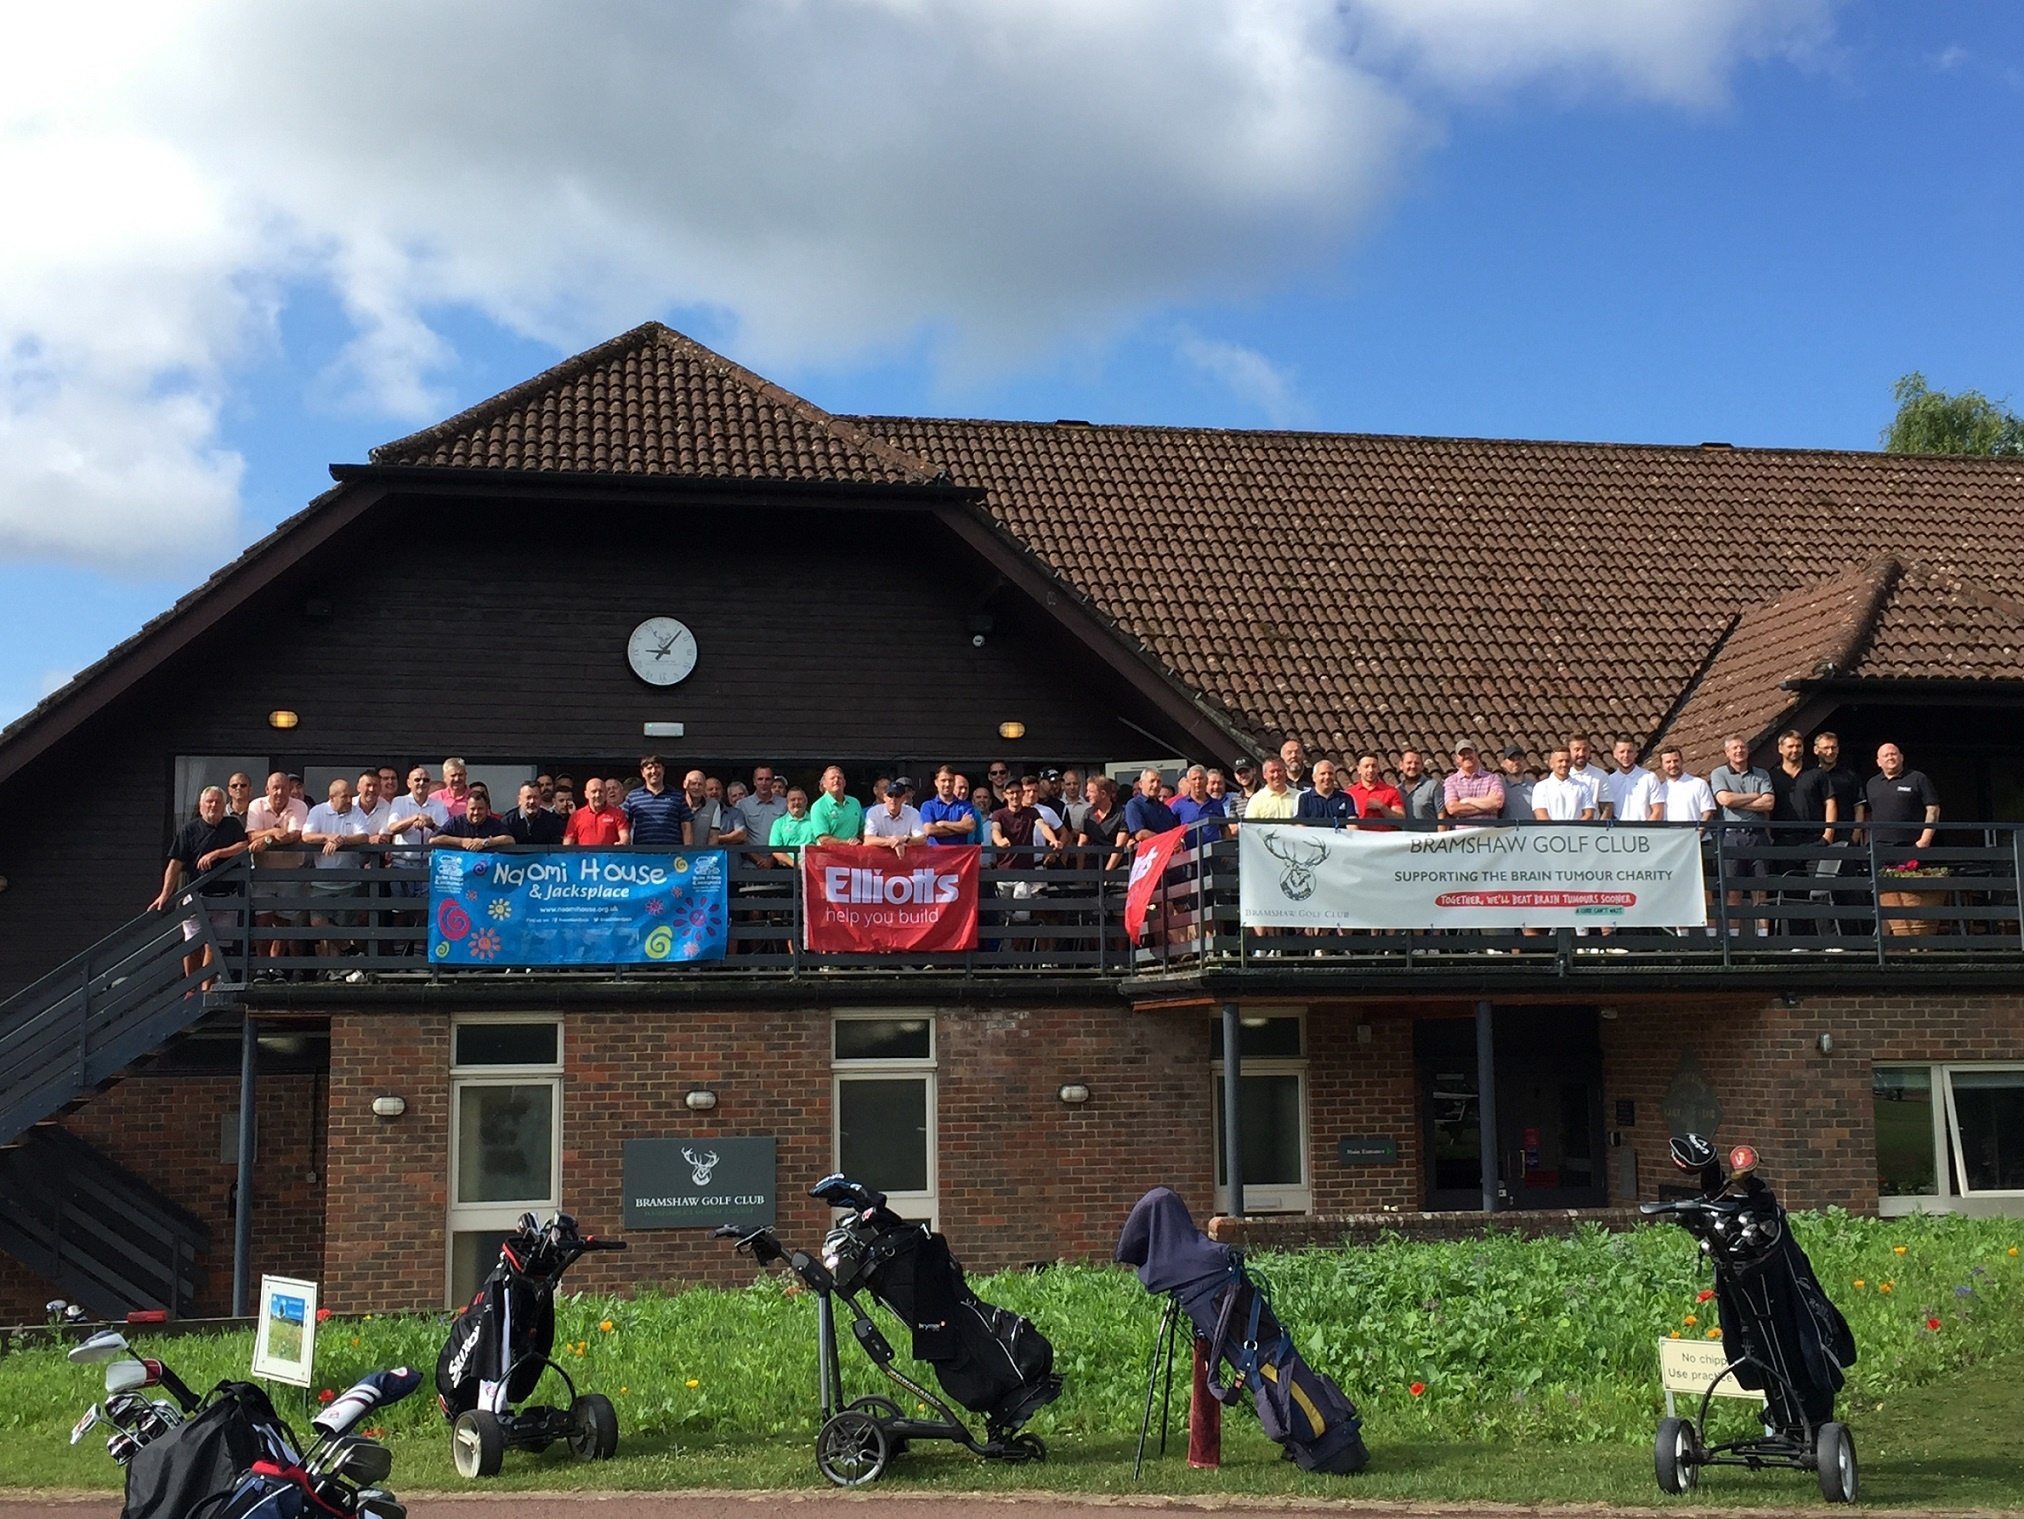 Golfers get ready to tee-off at Bramshaw Golf Club, 2019